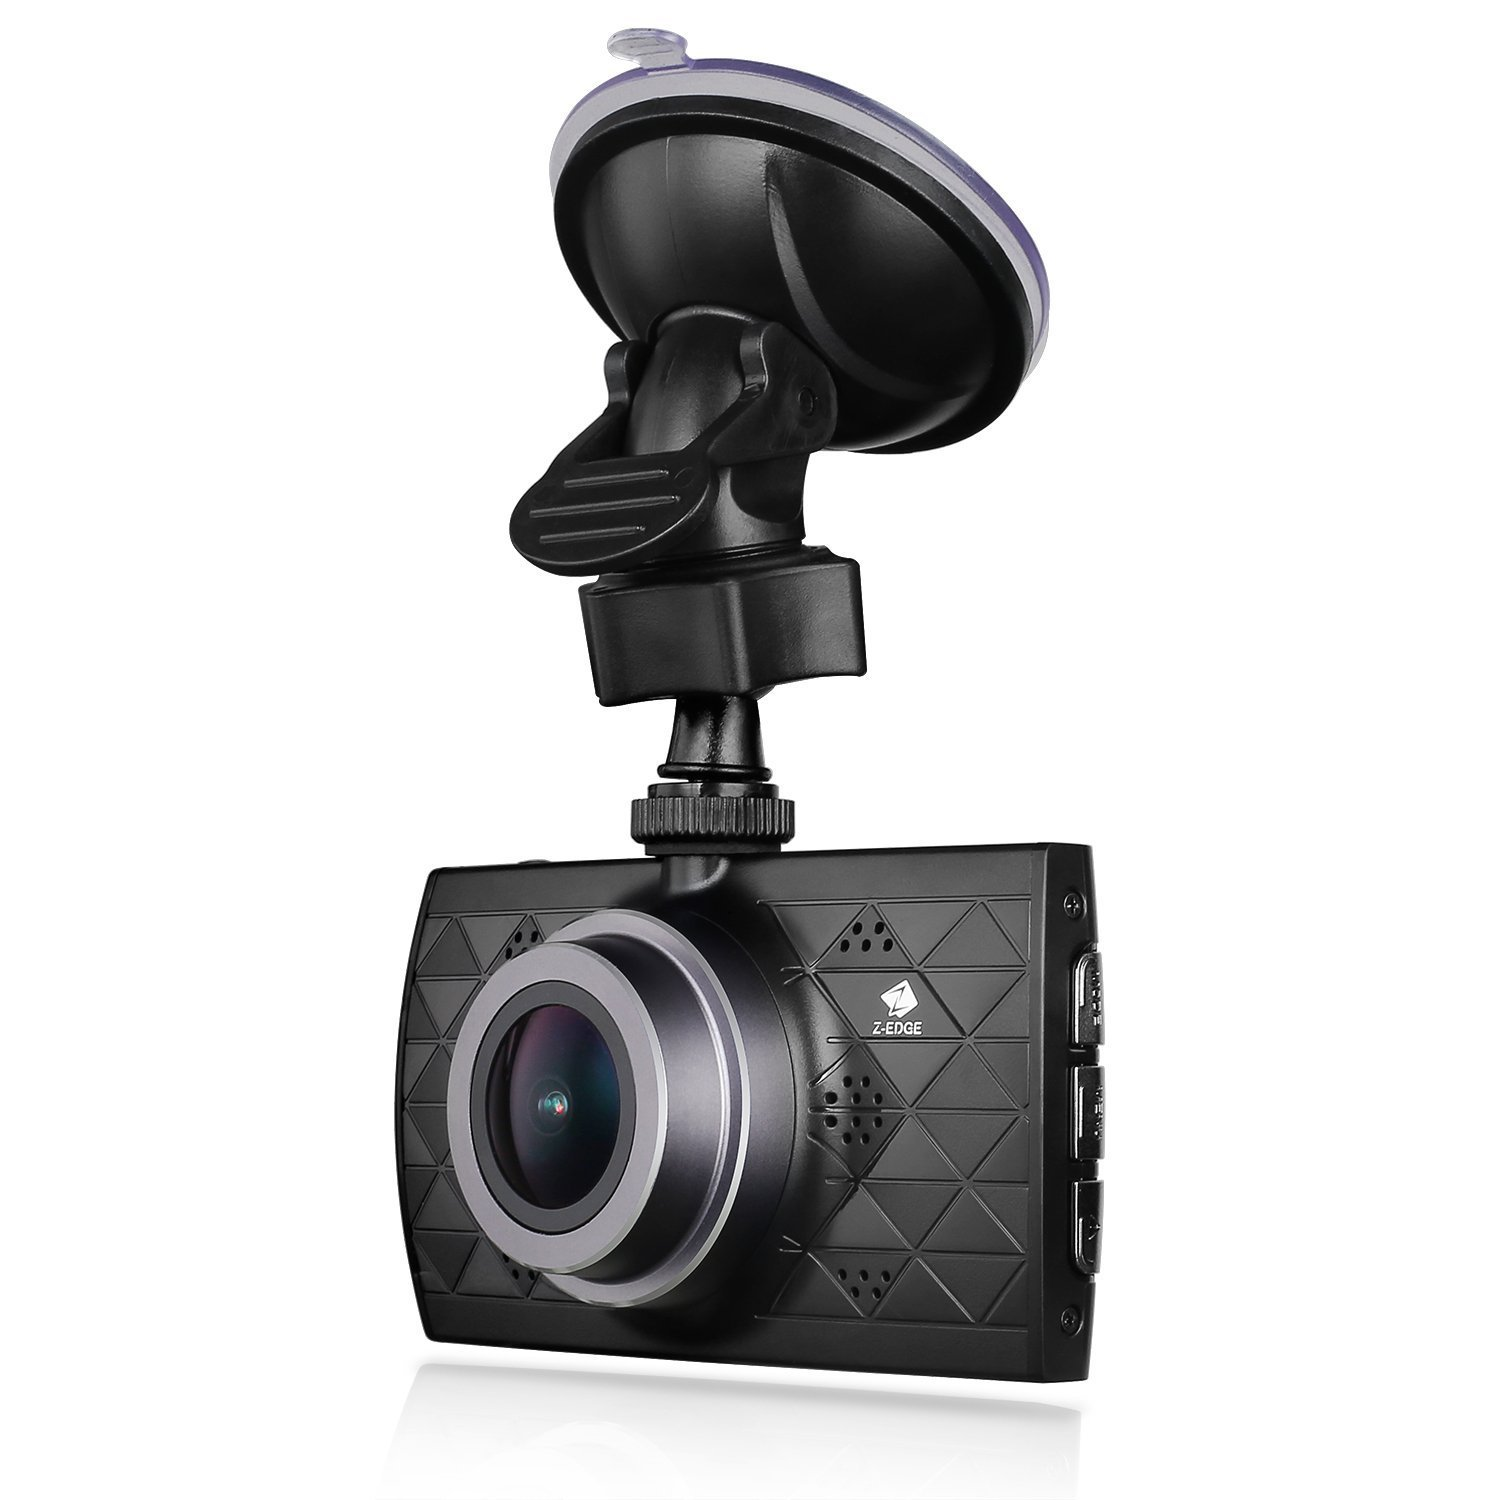 Z-EDGE Z3 Plus Dash Cam, Super HD 2.5K Car Dashboard Camera 1440P Car Camera with Ambarella A12 Chipset, 3-Inch Screen, Super HDR Night Vision, 155-Degree Wide Angle and 32GB Memory Card Included by Z-EDGE